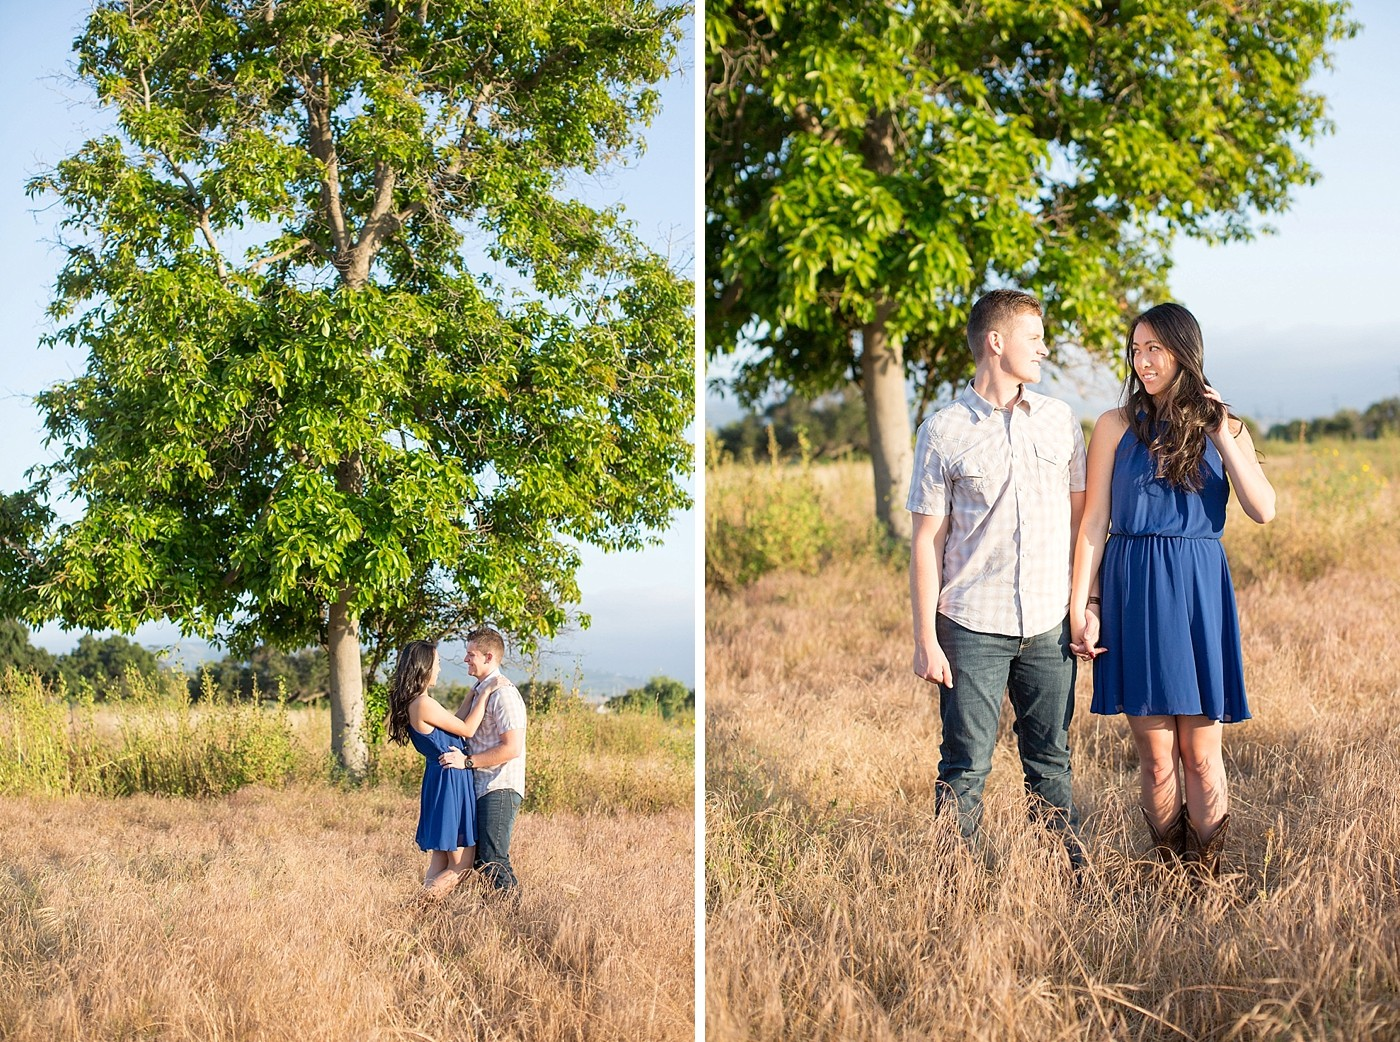 jake_kayla_engagement_san_juan_capistrano_open_space_0043